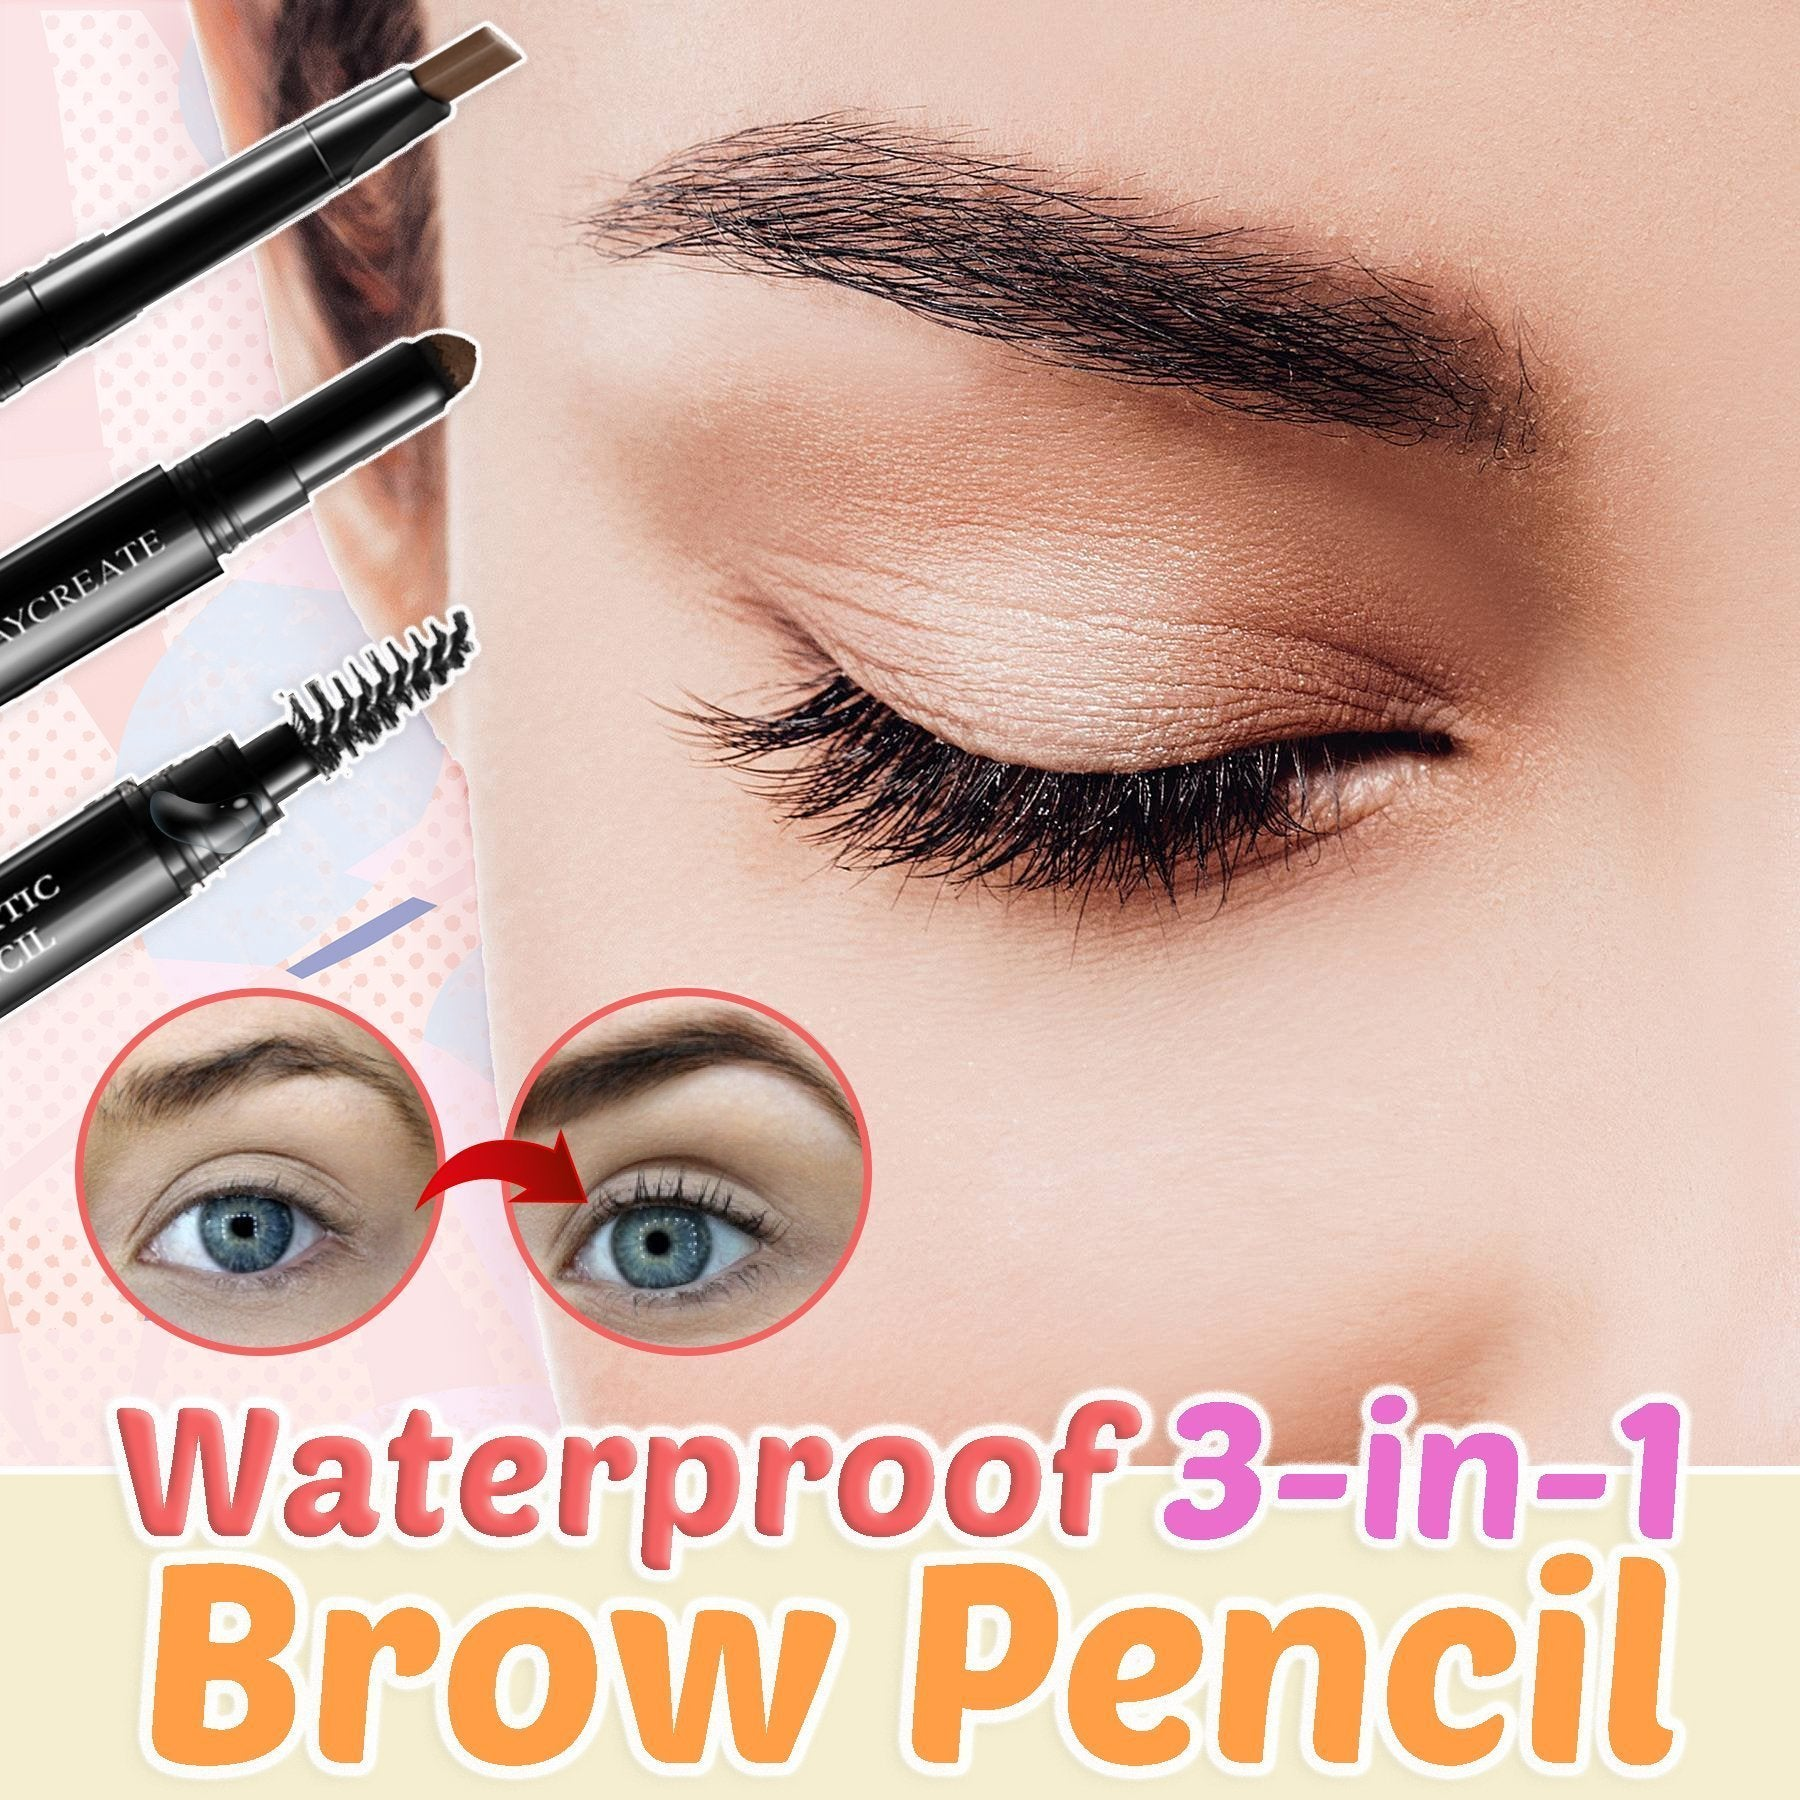 Waterproof 3-in-1 Brow Pencil